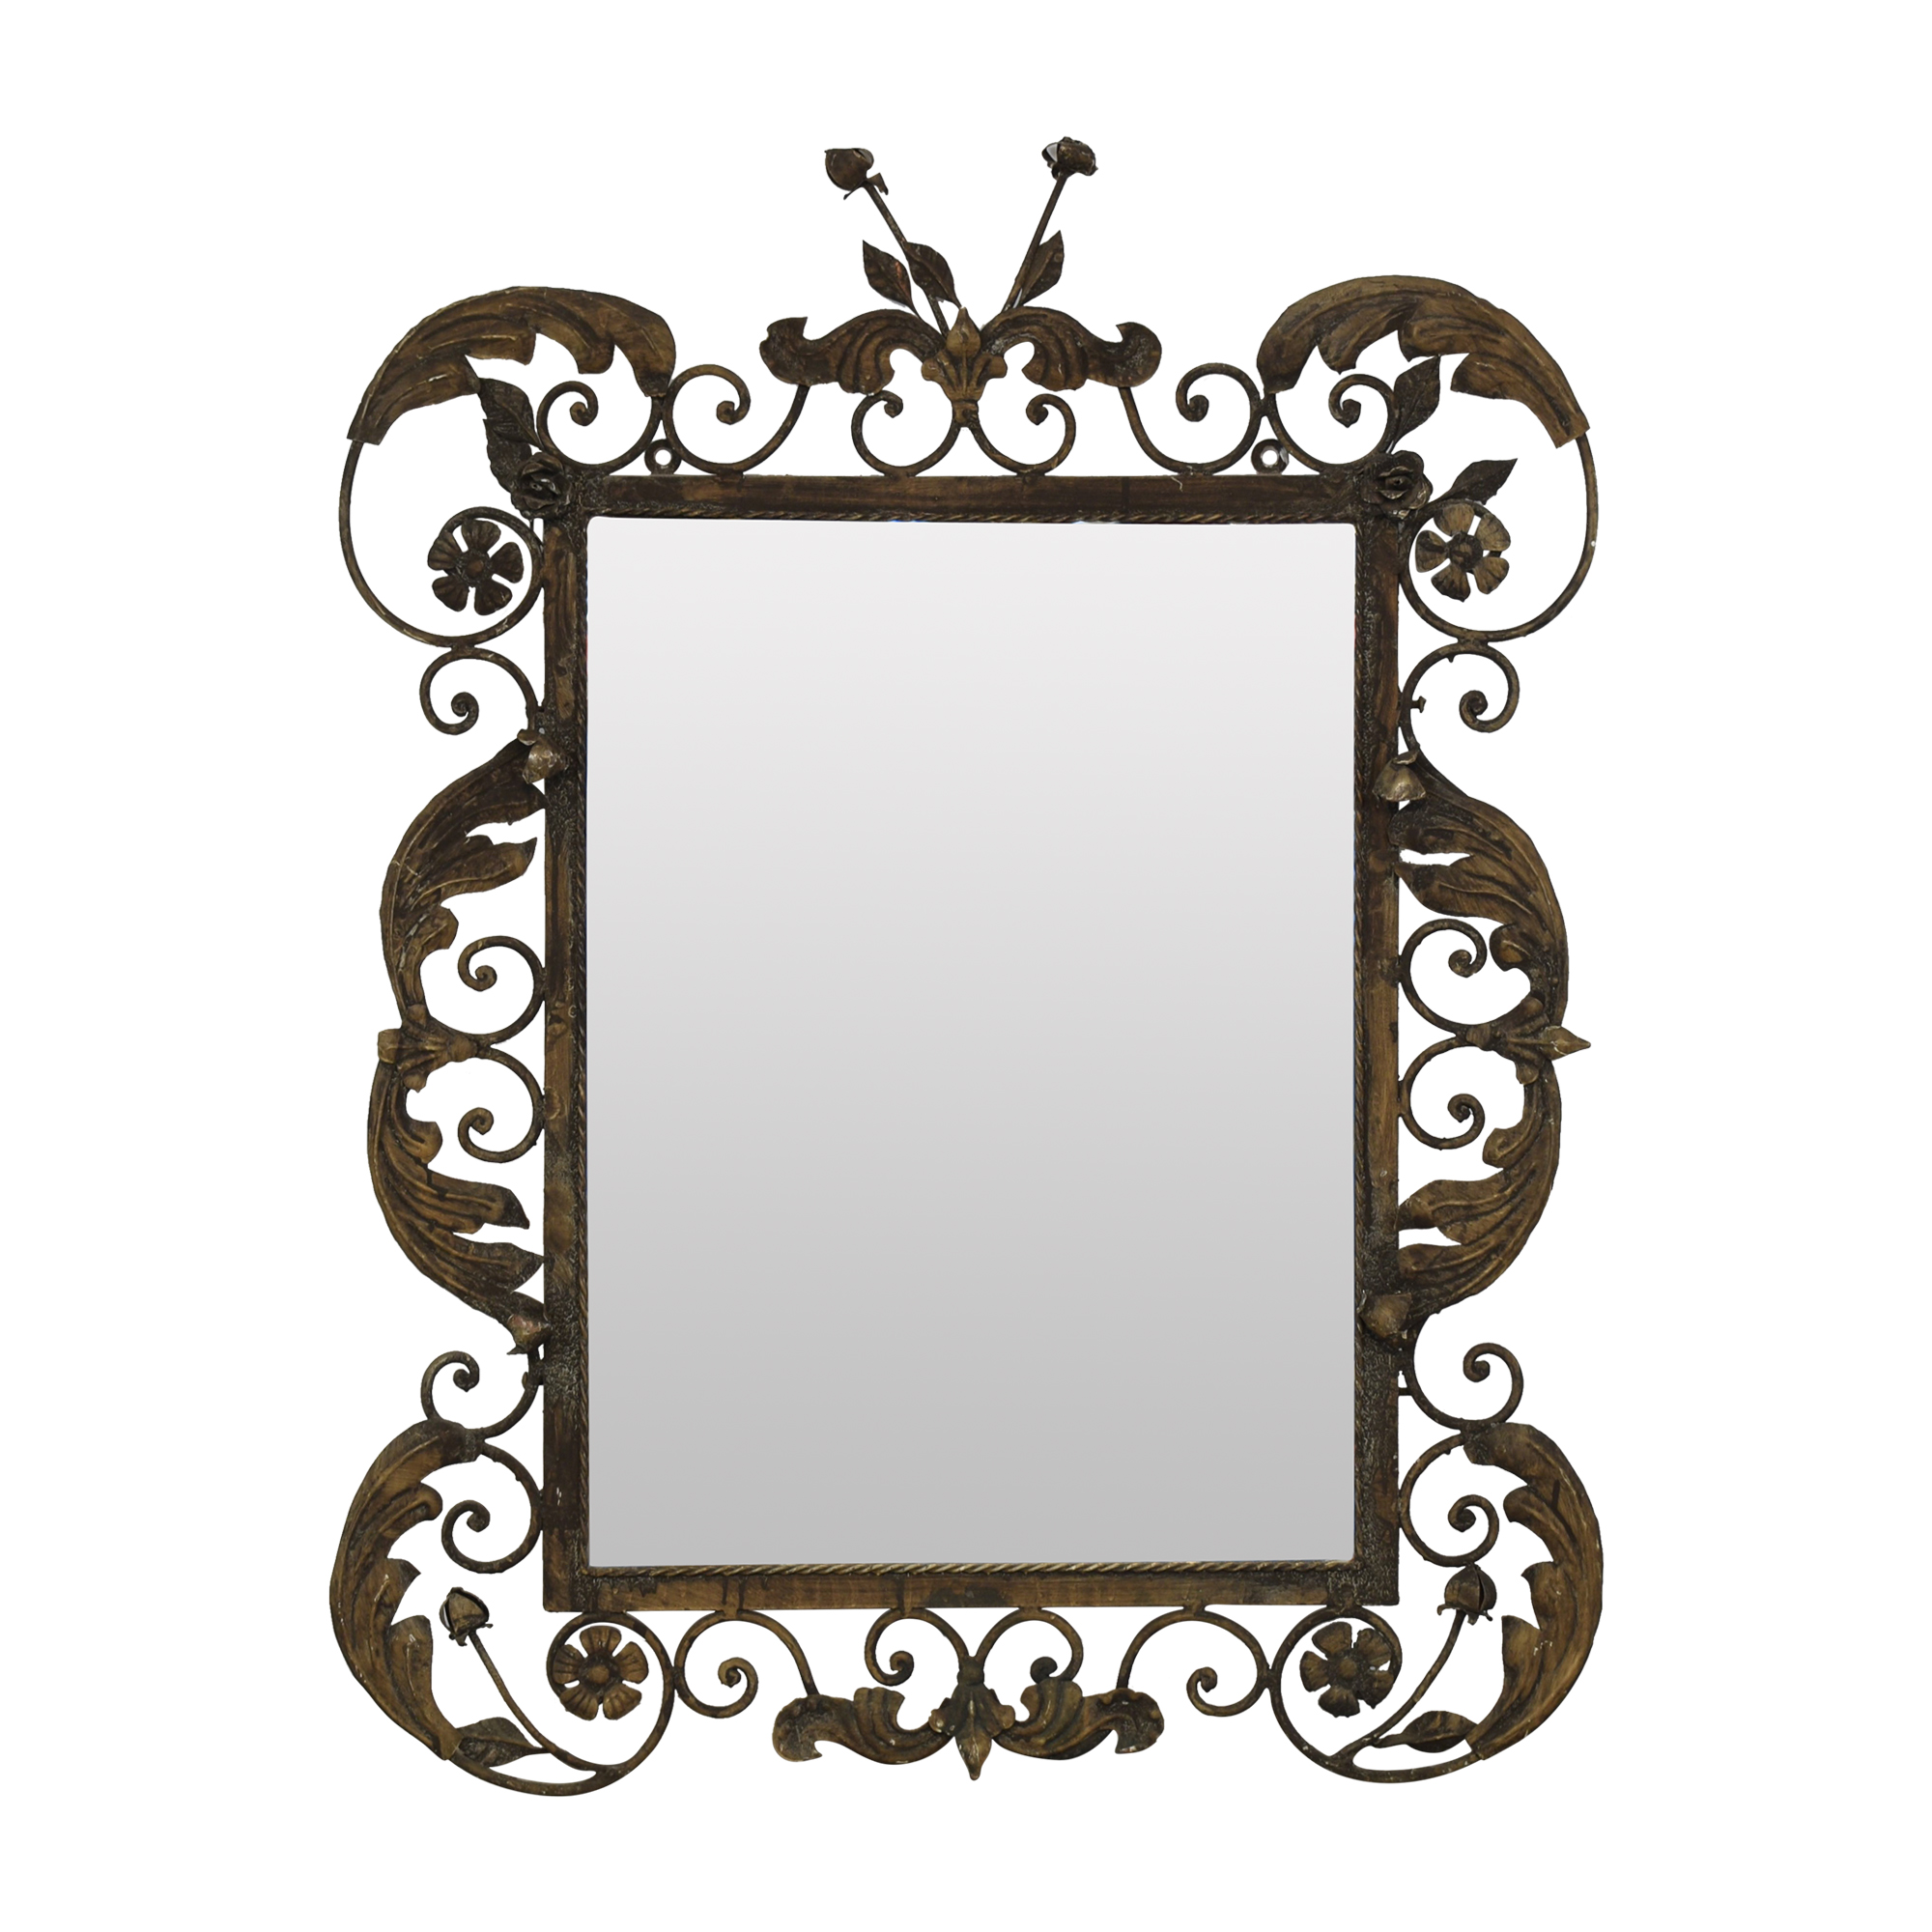 Decorative Wall Mirror price